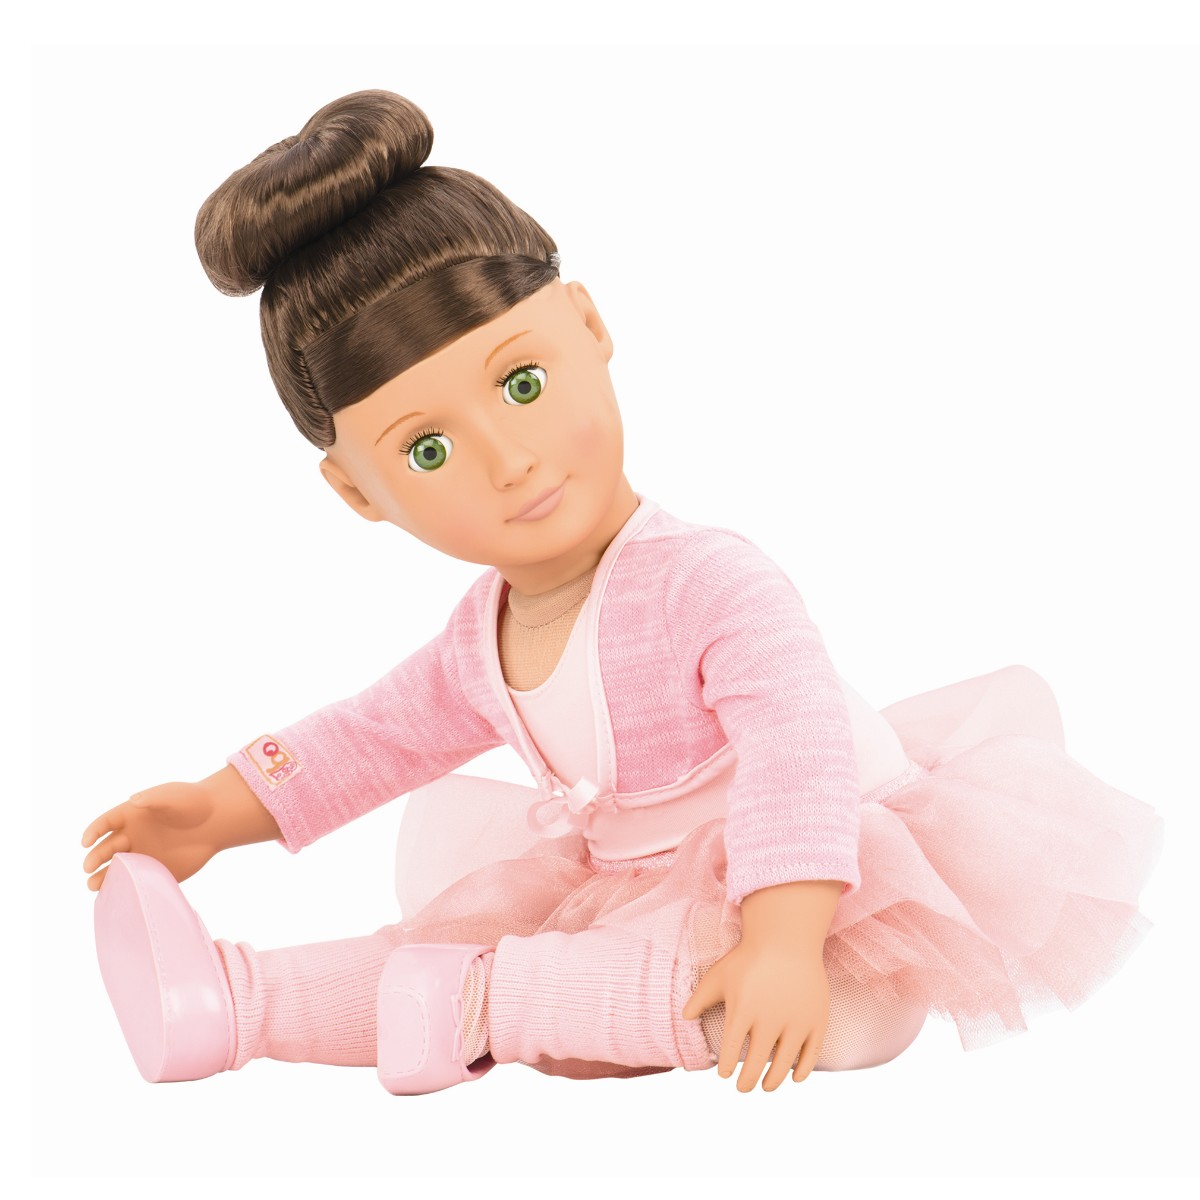 Our Generation - Sydney Lee Balletdoll w. Extra Clothes (731099)